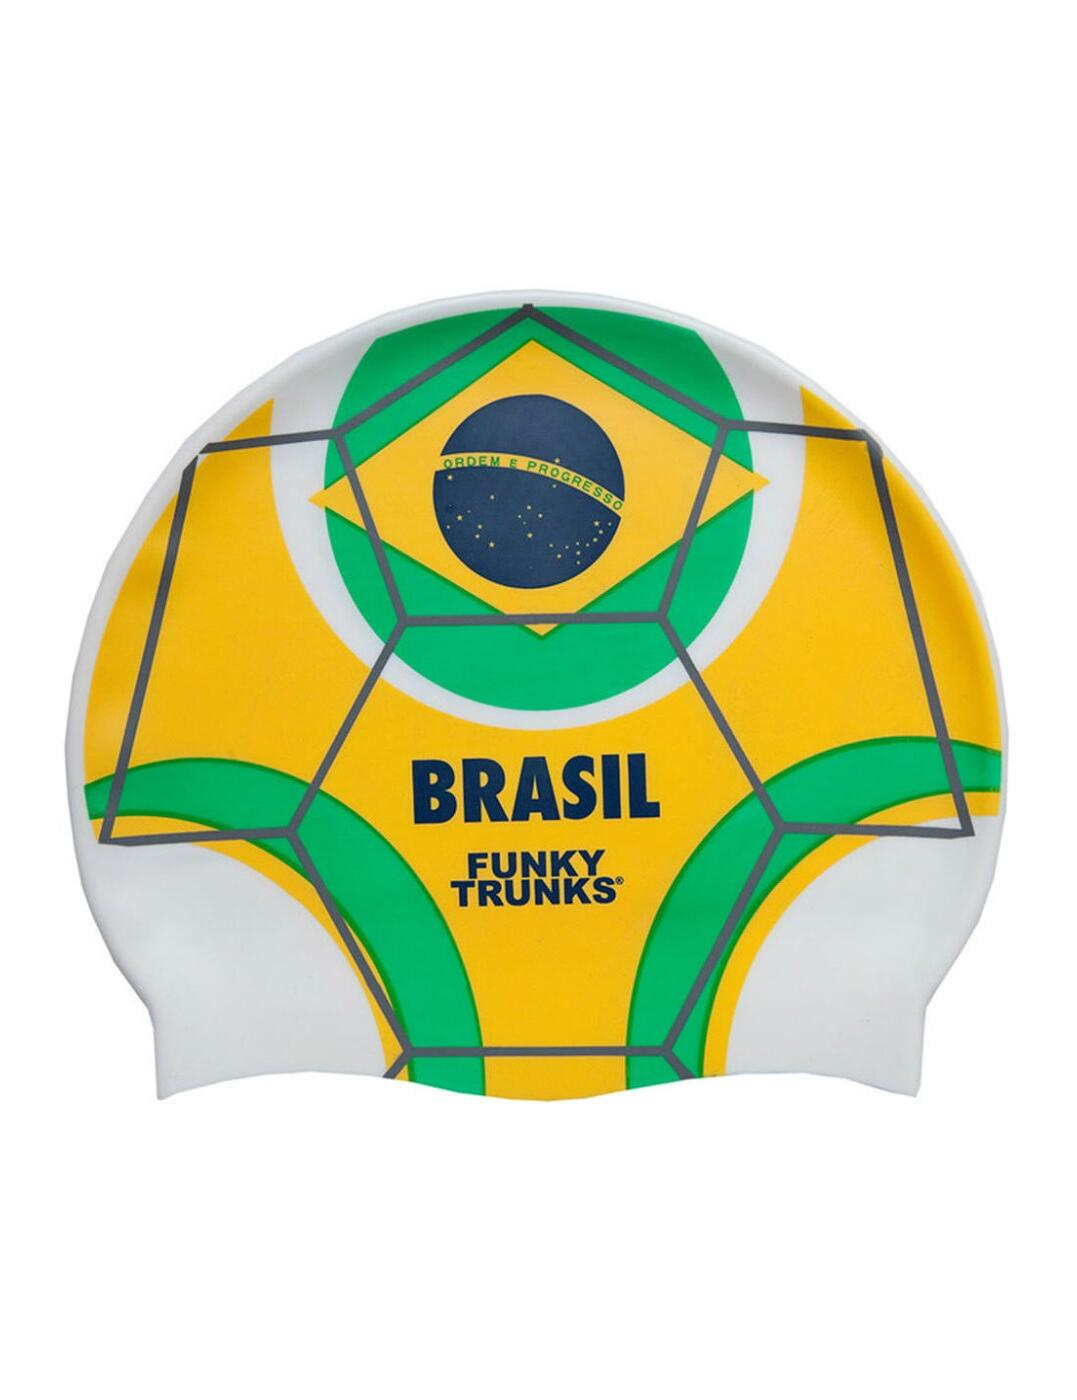 FT9900675 Funky Trunks Silicone Swimming Cap - FT9900675 Canarinho